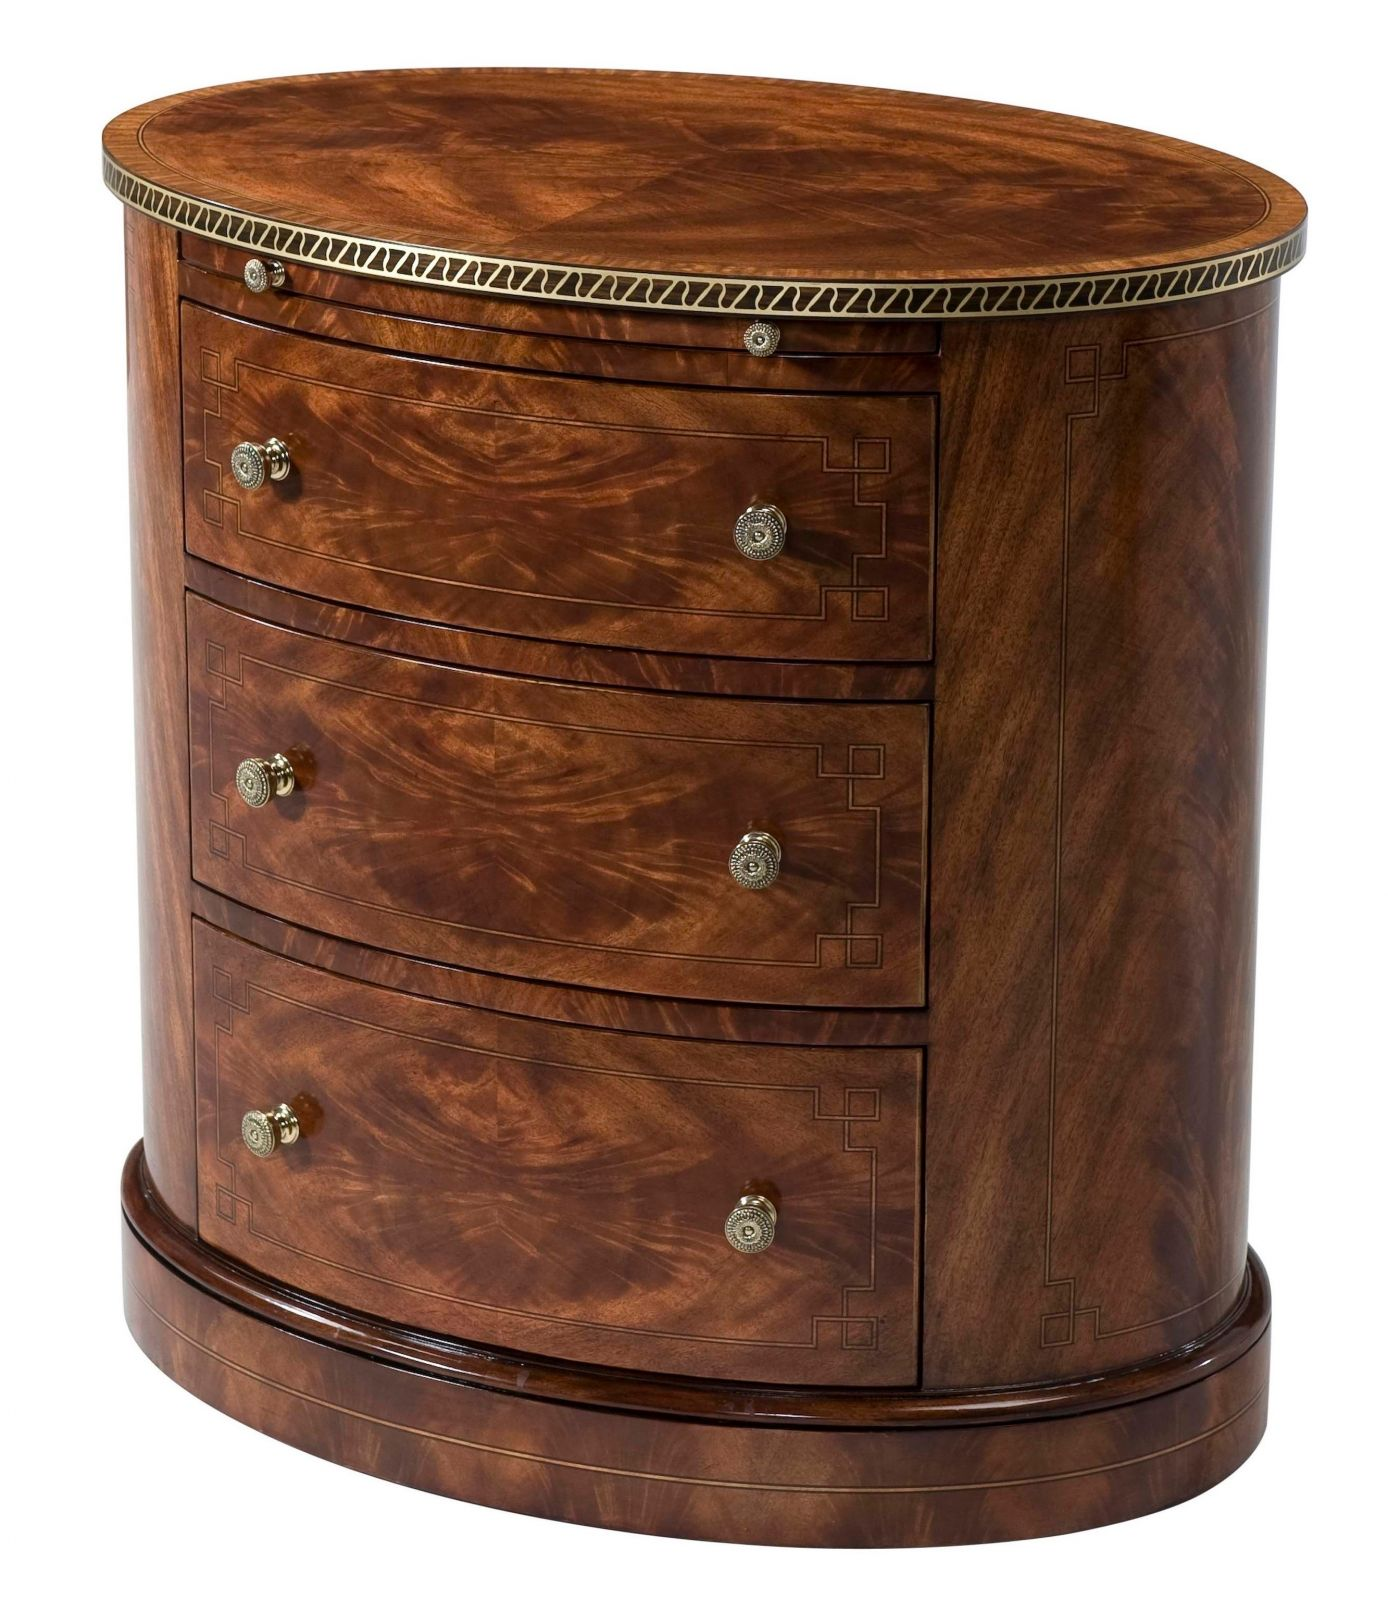 An oval flame mahogany veneered nightstand